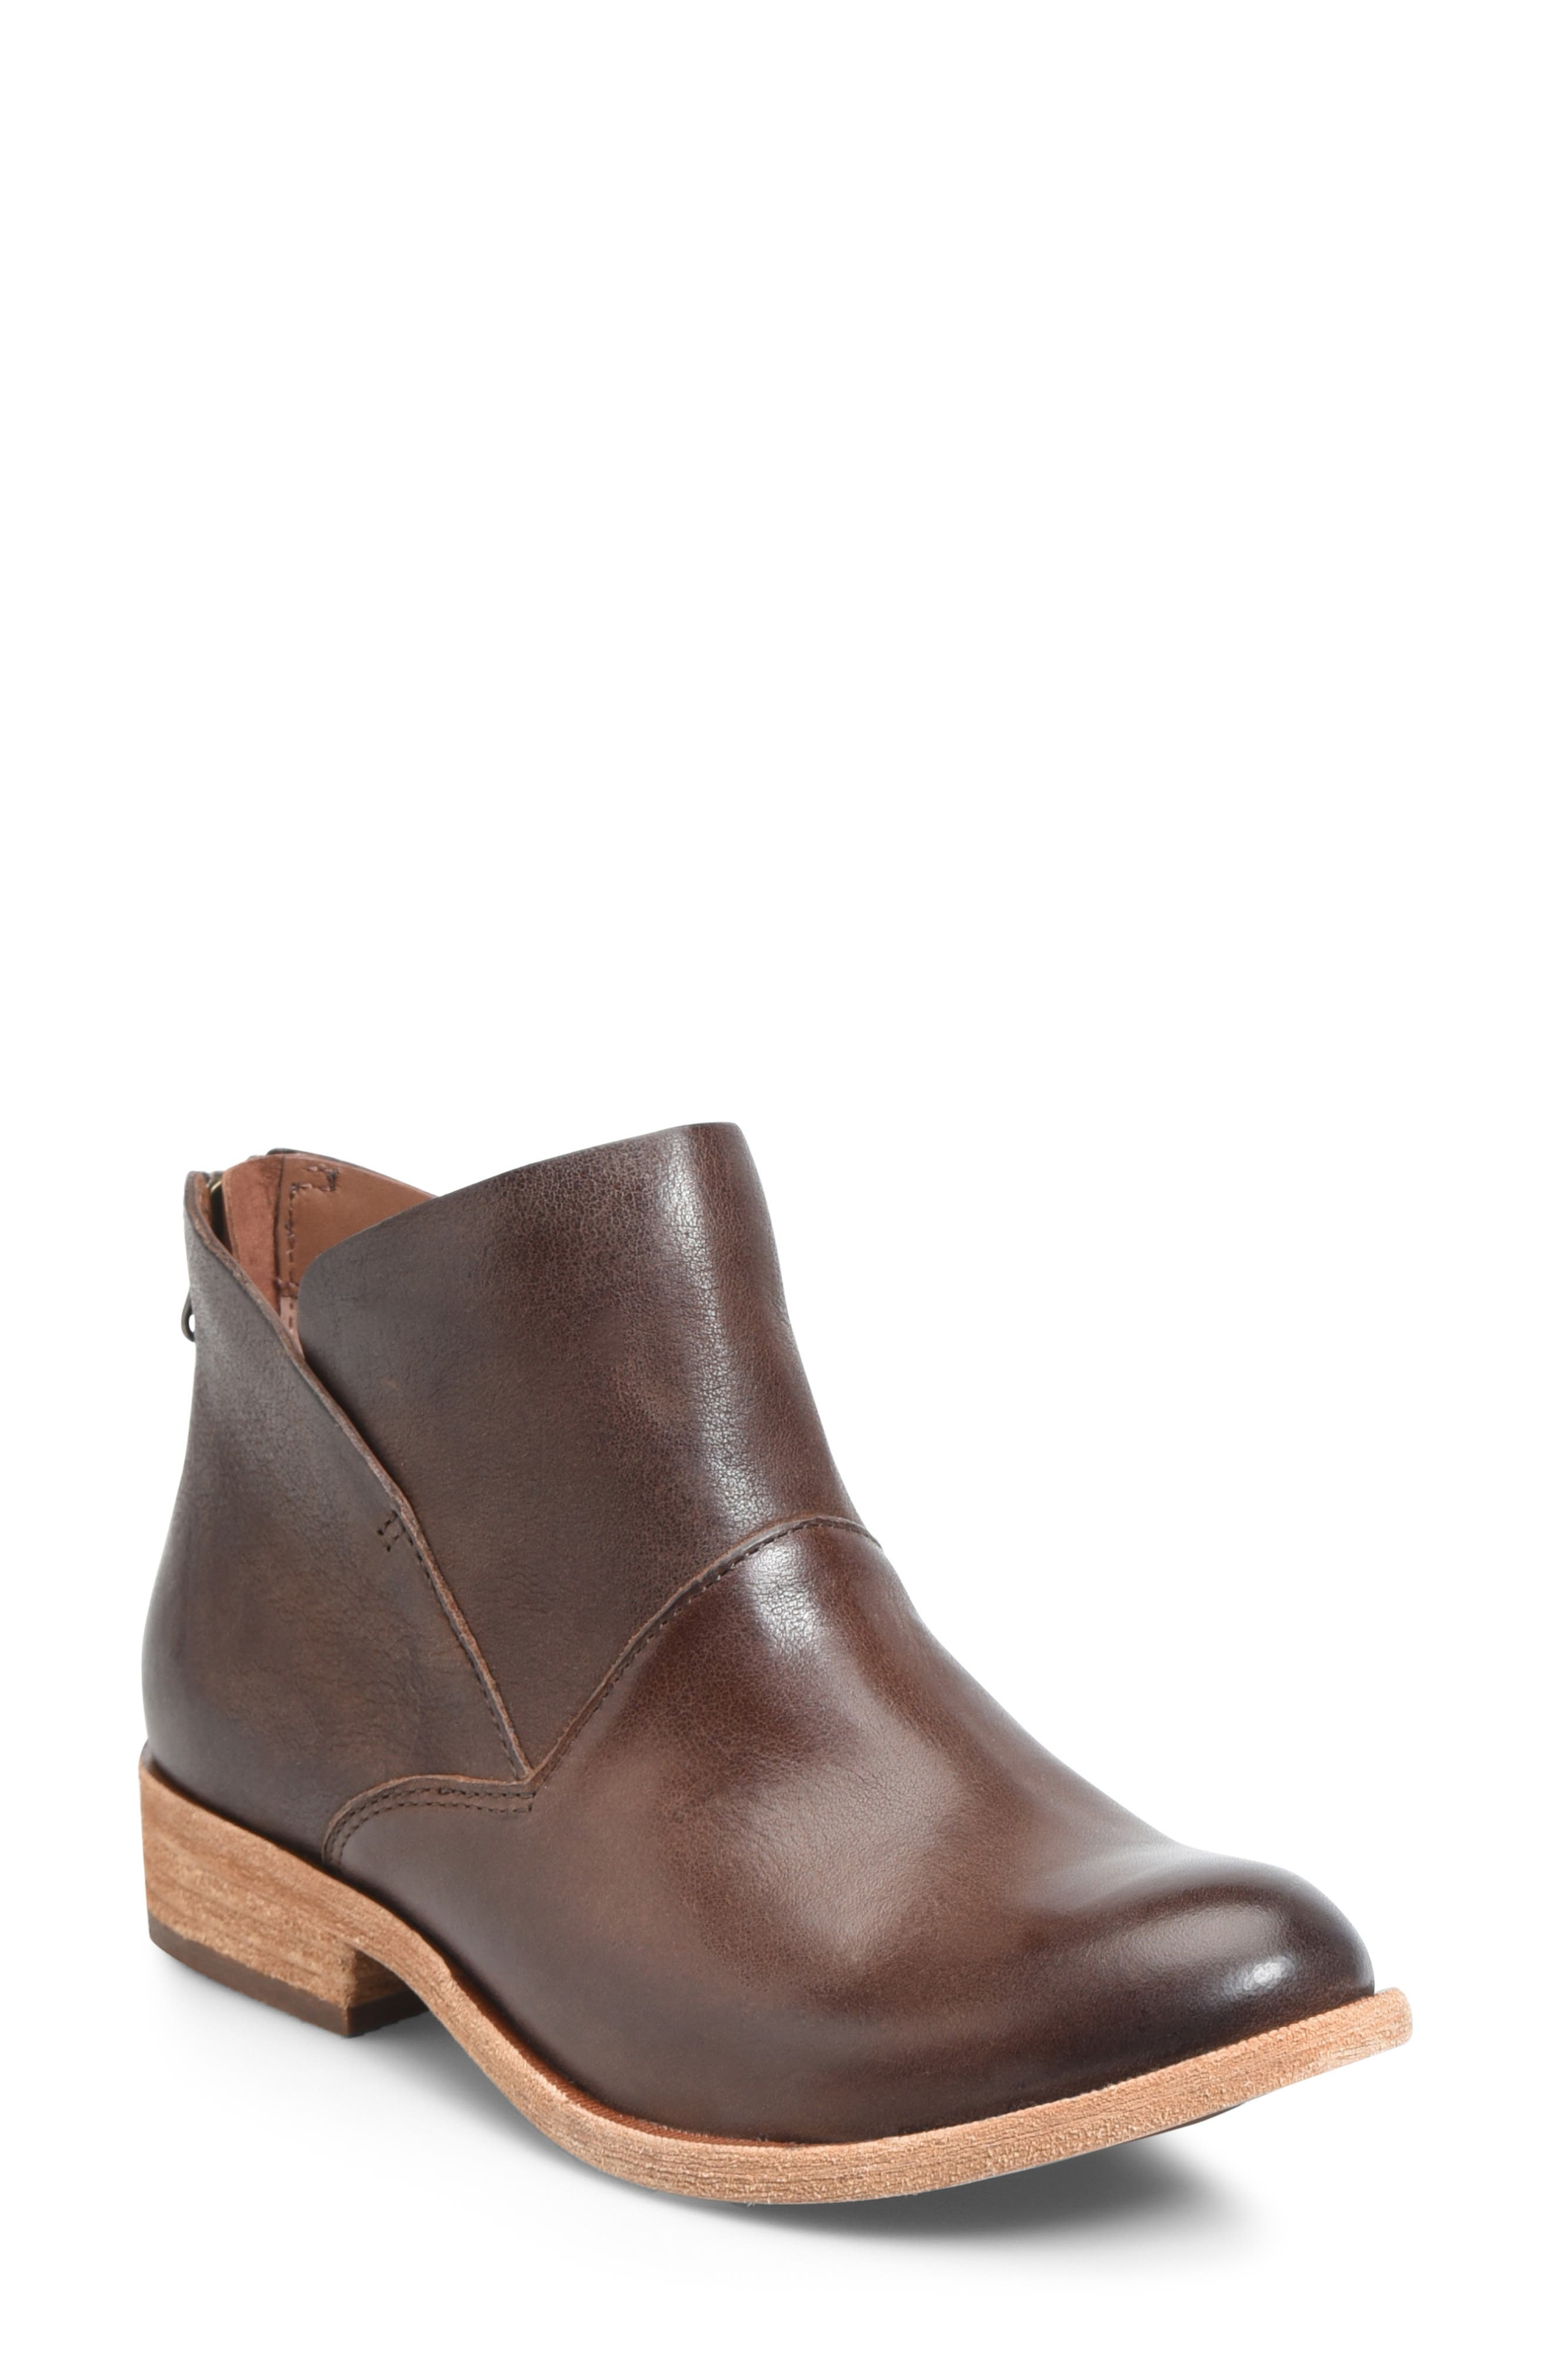 Ryder Ankle Boot,                             Main thumbnail 1, color,                             DARK BROWN LEATHER